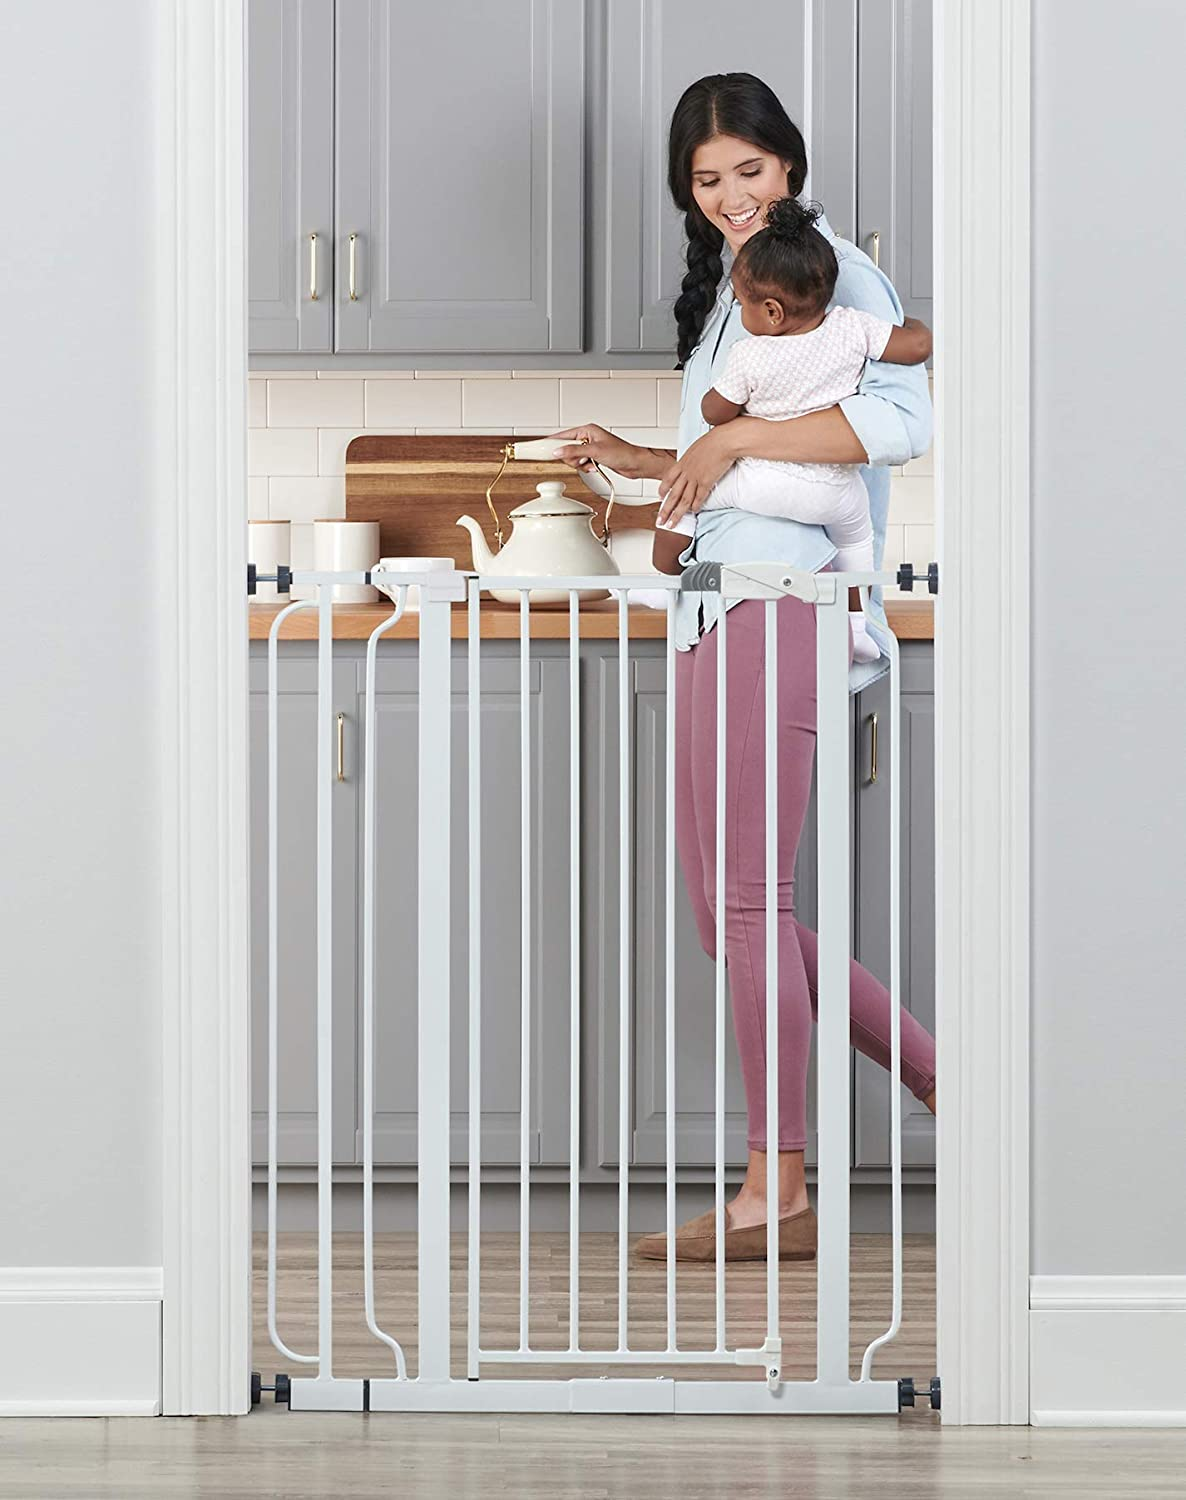 9. Tall safety baby gates